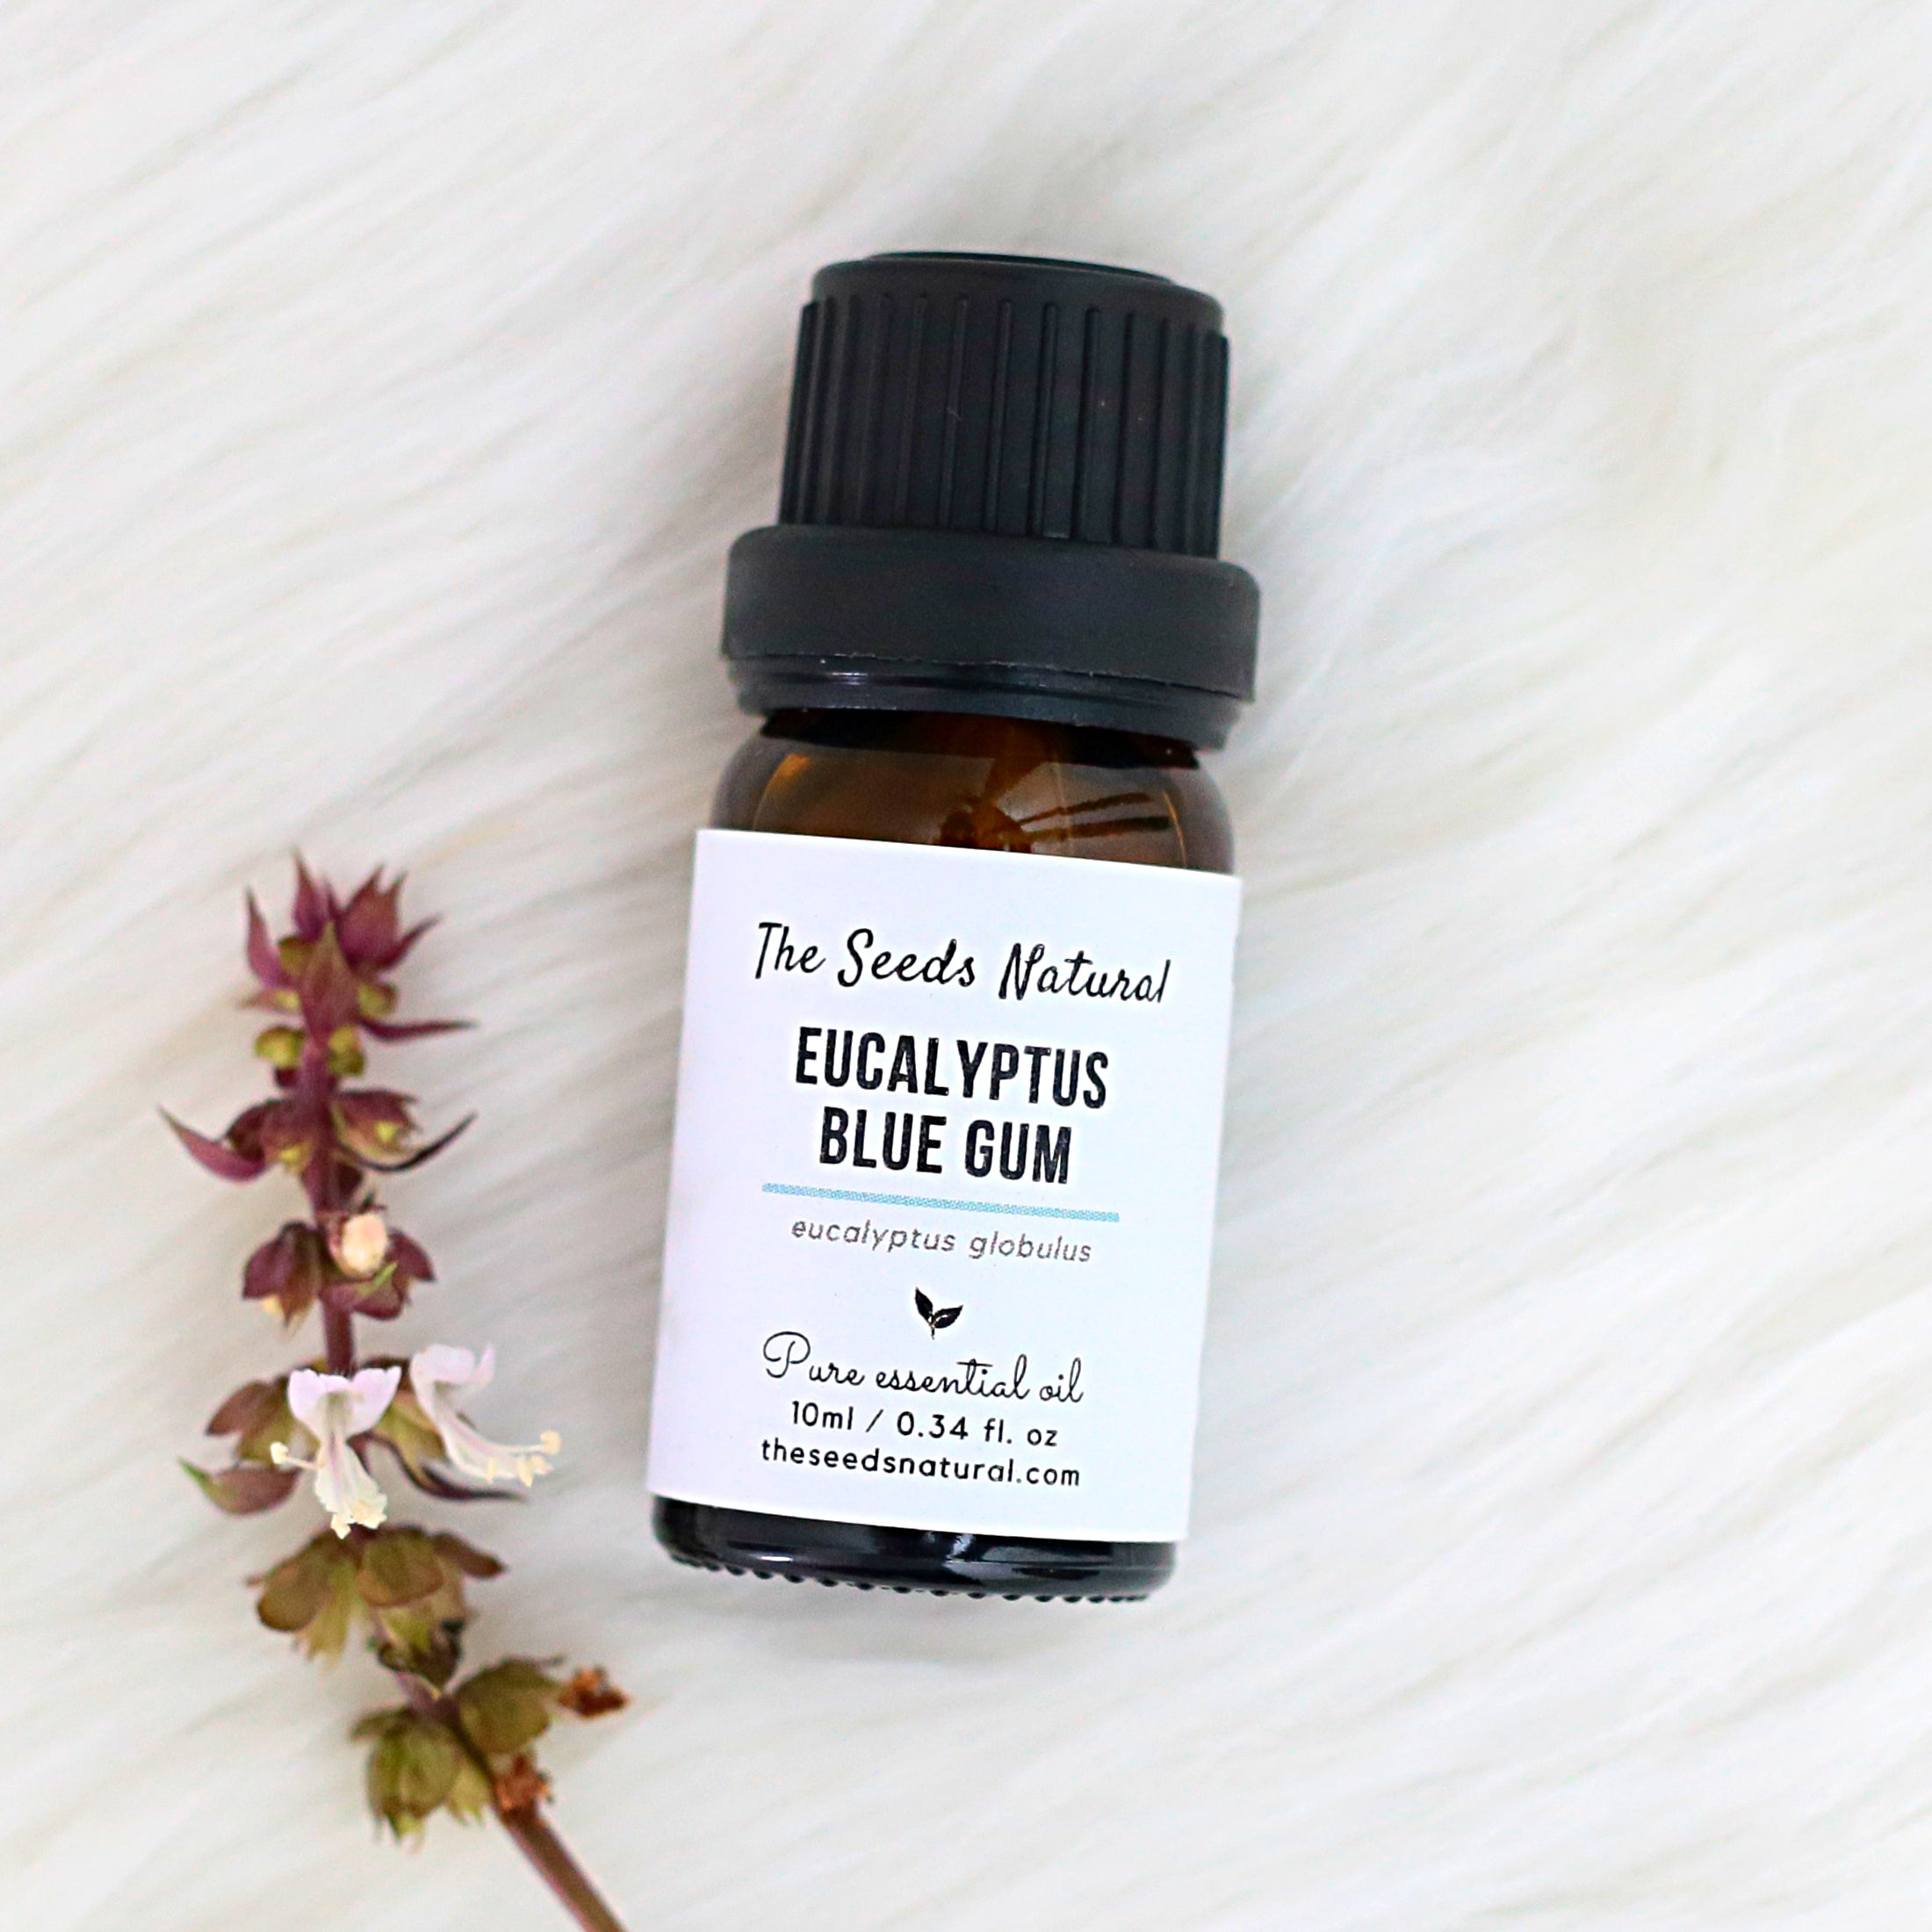 Eucalyptus essential oil, eucalyptus blue gum essential oil, 蓝胶尤加利精油, 尤加利精油, moisquito repellent, treat respiratory issues including cough, cold, nasal congestion, bronchitis, and sinusitis, relieves muscle pain, the seeds natural